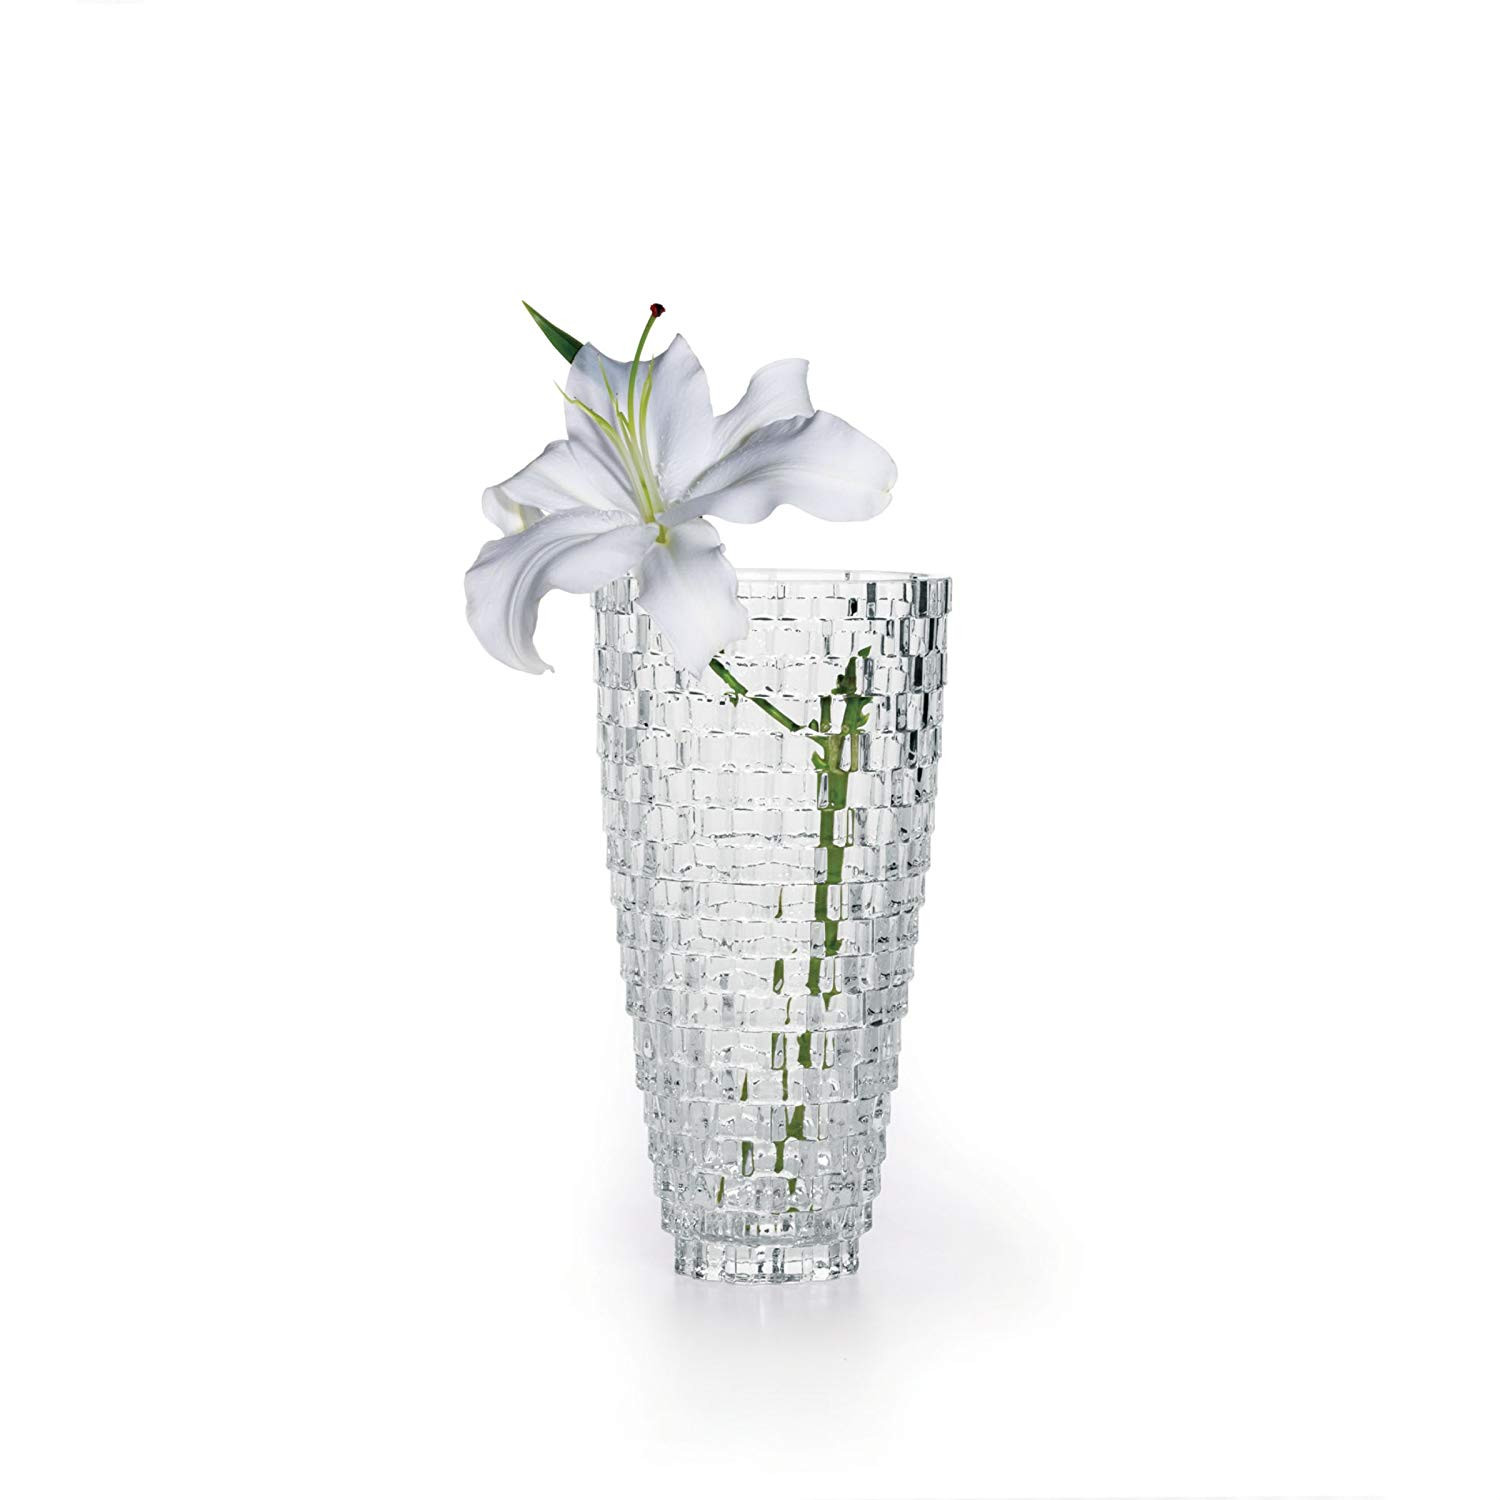 waterford marquis markham vase of amazon com mikasa palazzo vase crystal 9 home kitchen regarding 71omlzr32fl sl1500